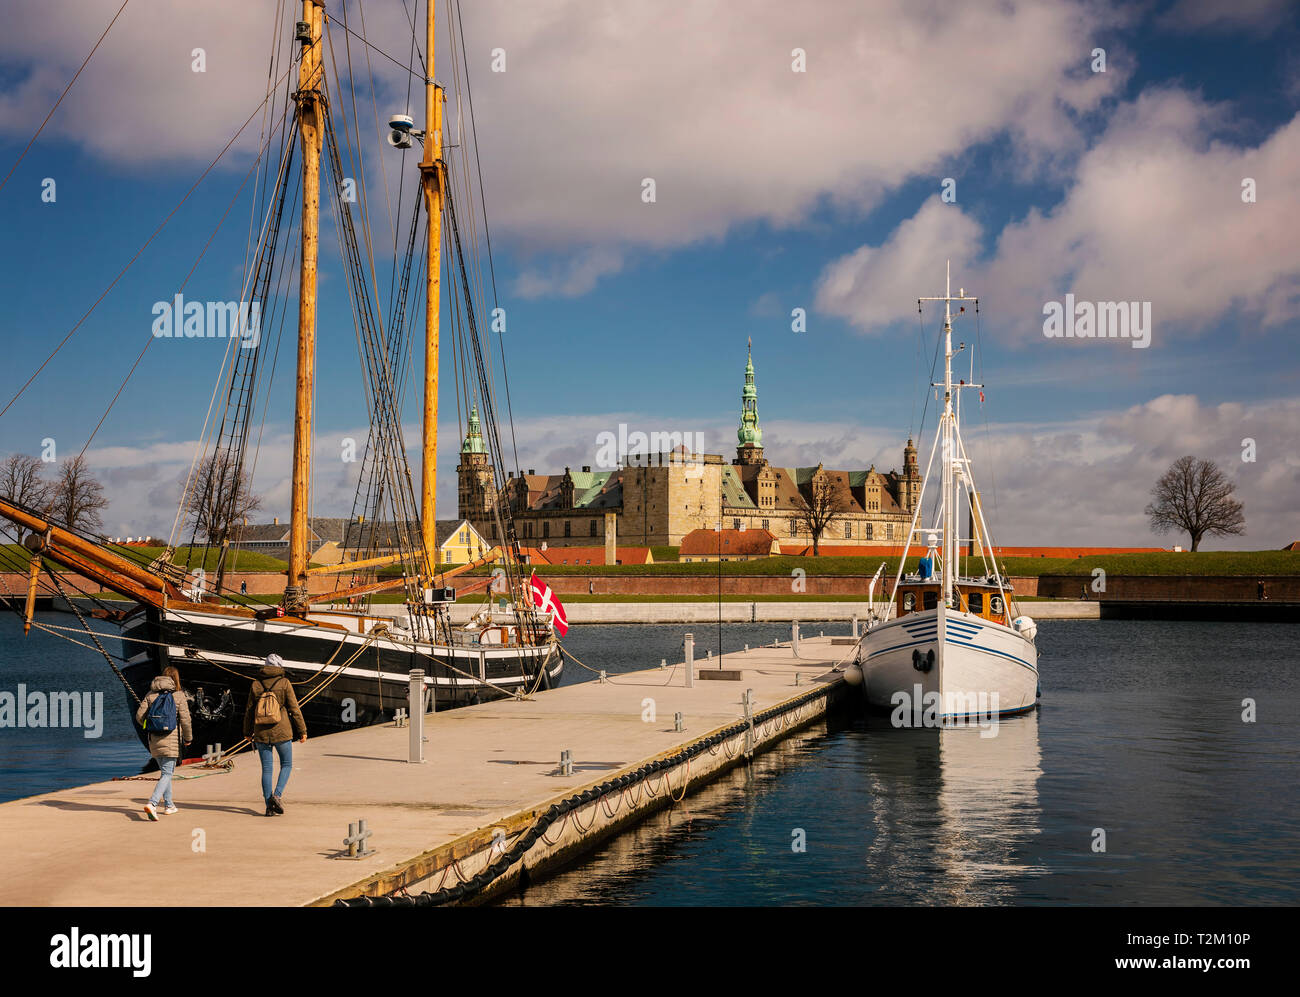 View of Kronborg castle and sail boats in the harbour of Helsingor, Denmark. - Stock Image